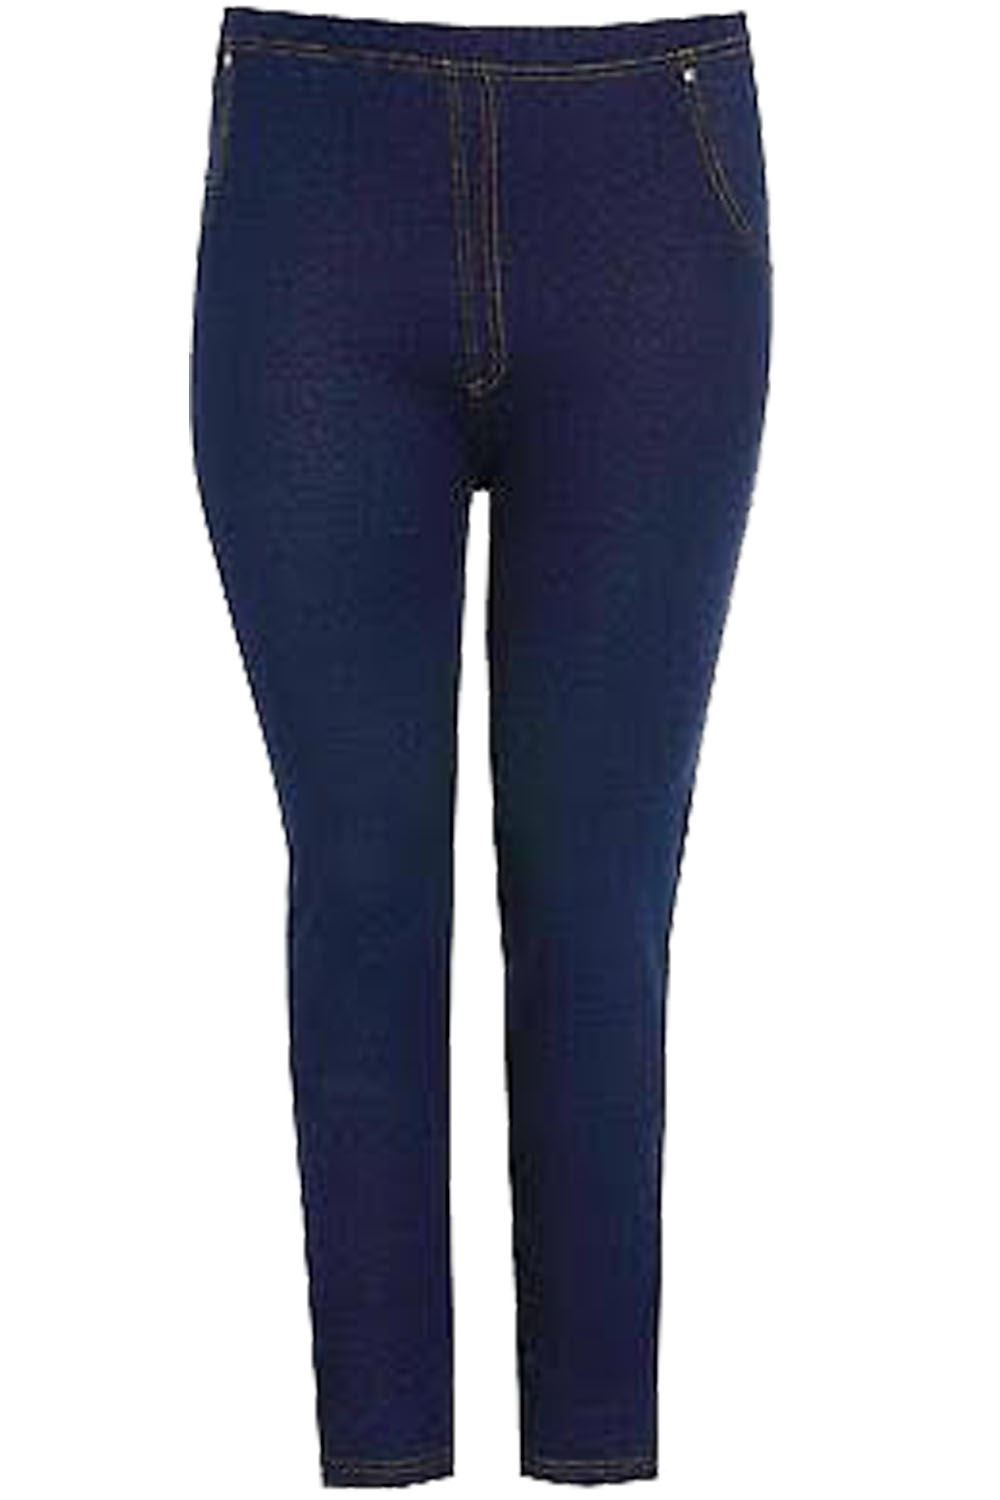 Find great deals on eBay for womens denim jeggings. Shop with confidence.